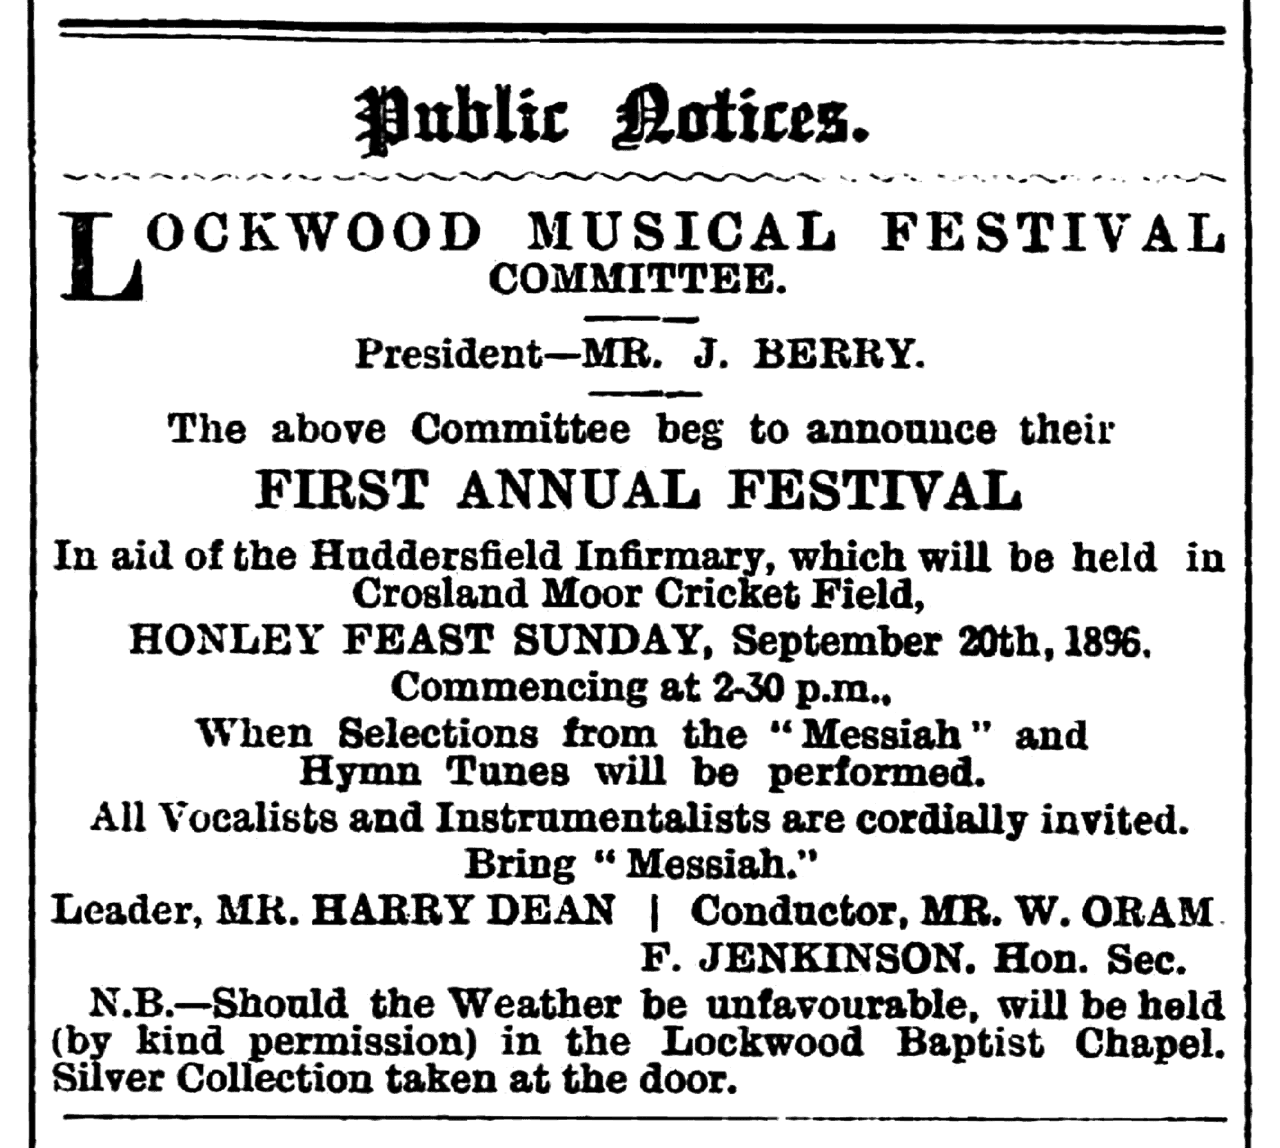 Huddersfield Chronicle 19 Sep 1896 - Public Notices, Lockwood Musical Fesitval.png